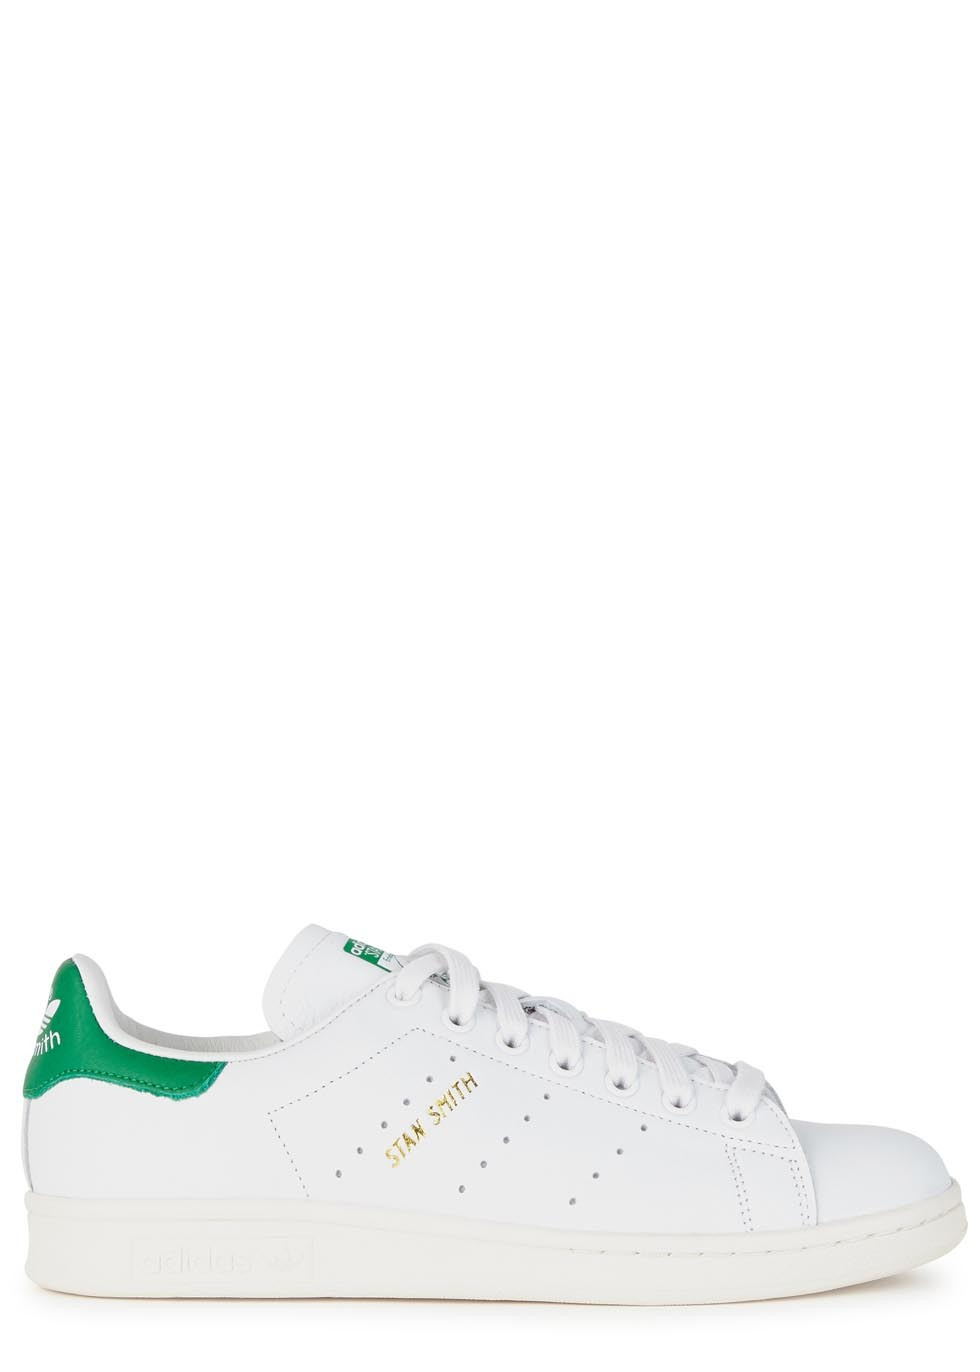 Stan Smith White Leather Trainers - predominant colour: white; occasions: casual; material: leather; heel height: flat; toe: round toe; style: trainers; finish: plain; pattern: plain; season: s/s 2016